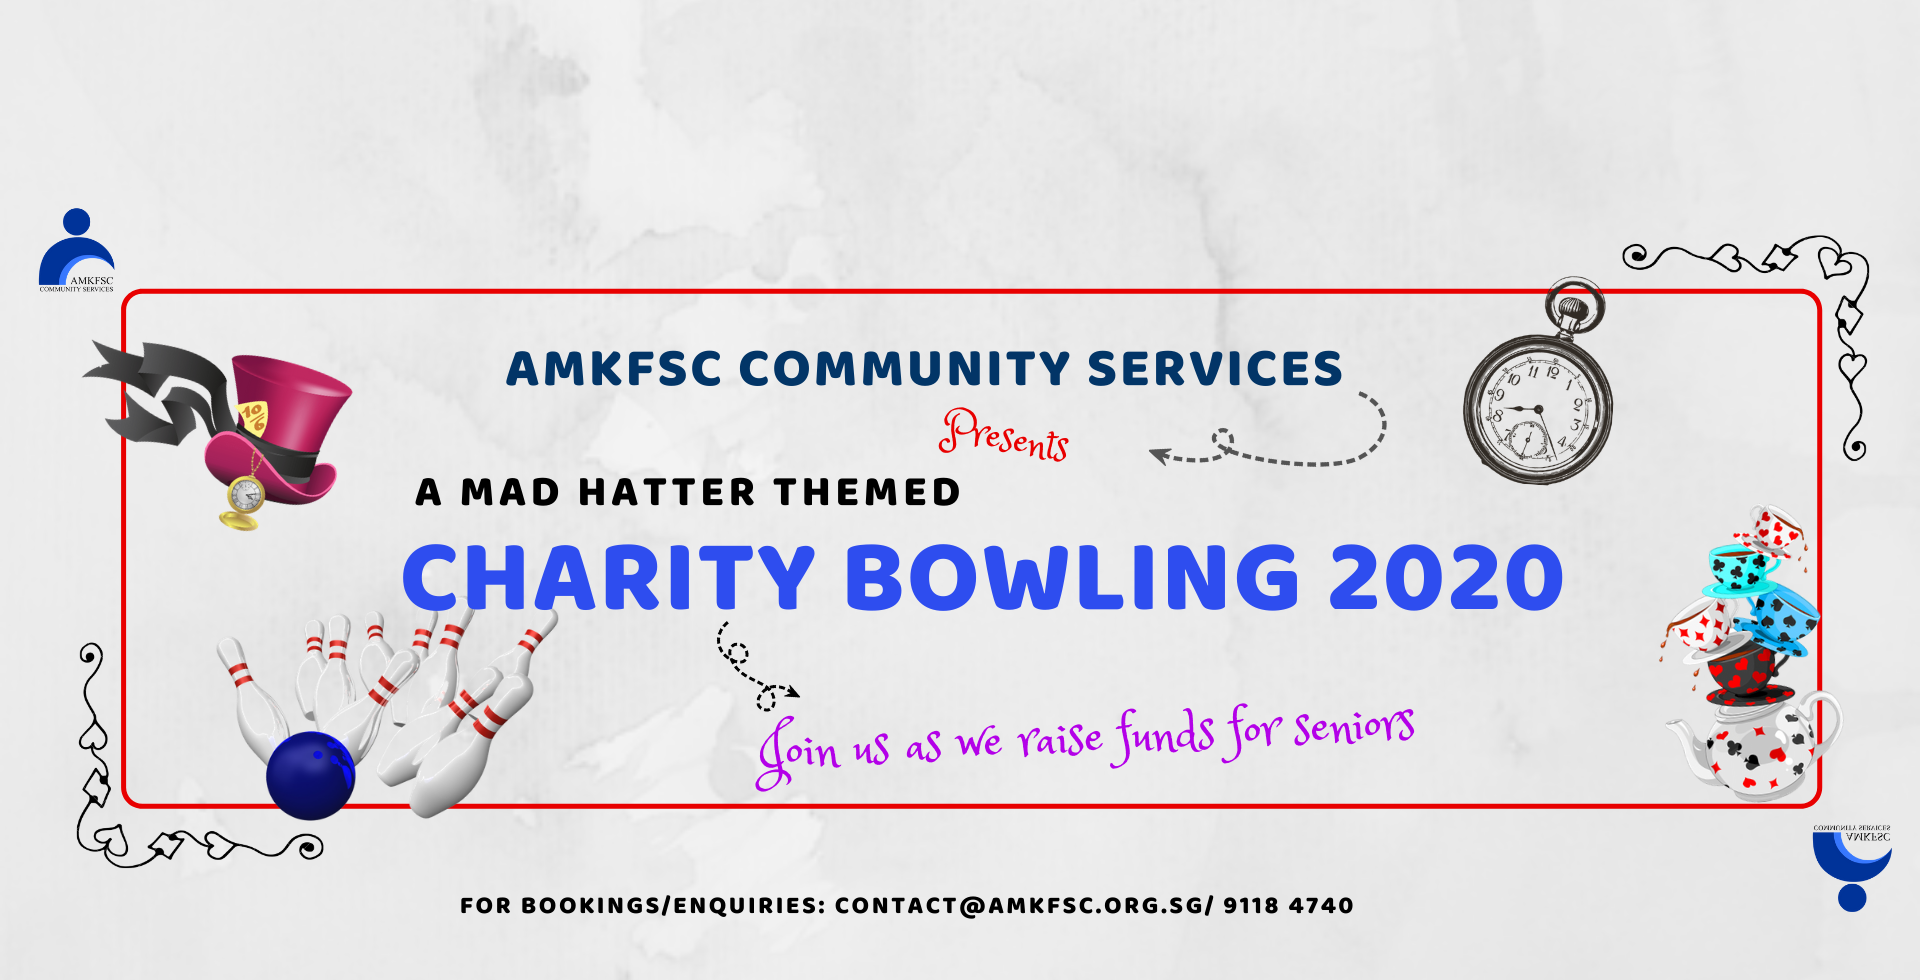 Charity Bowling 2020